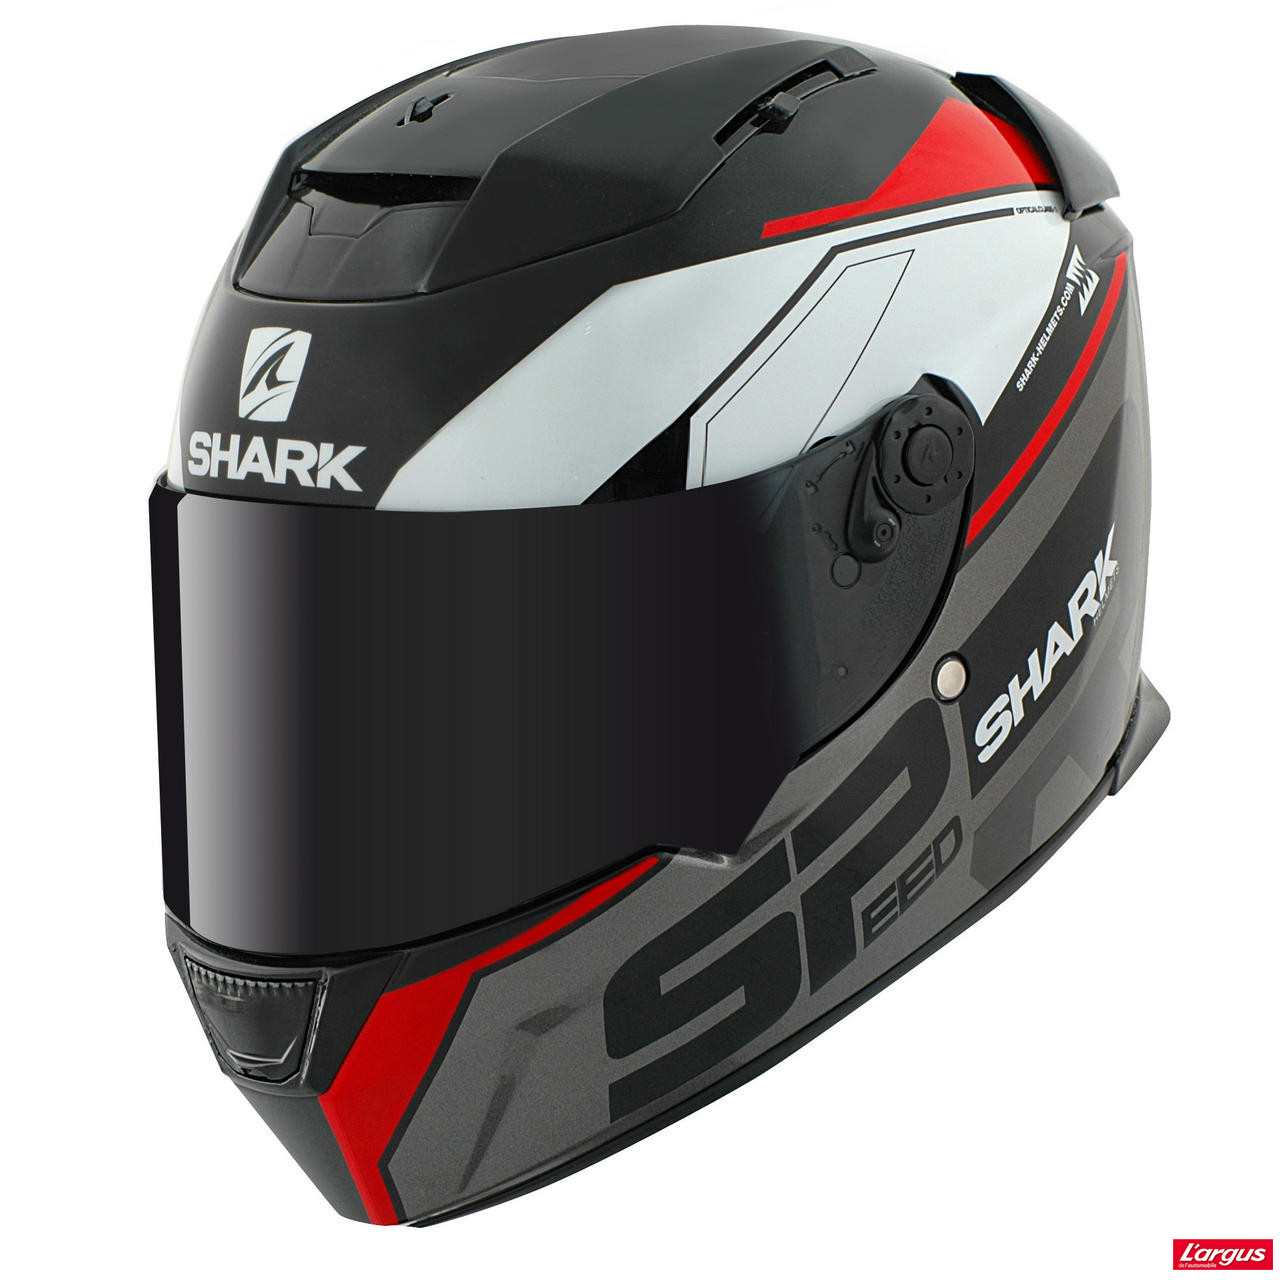 salon de la moto 2011 casque shark speed r photo 5. Black Bedroom Furniture Sets. Home Design Ideas